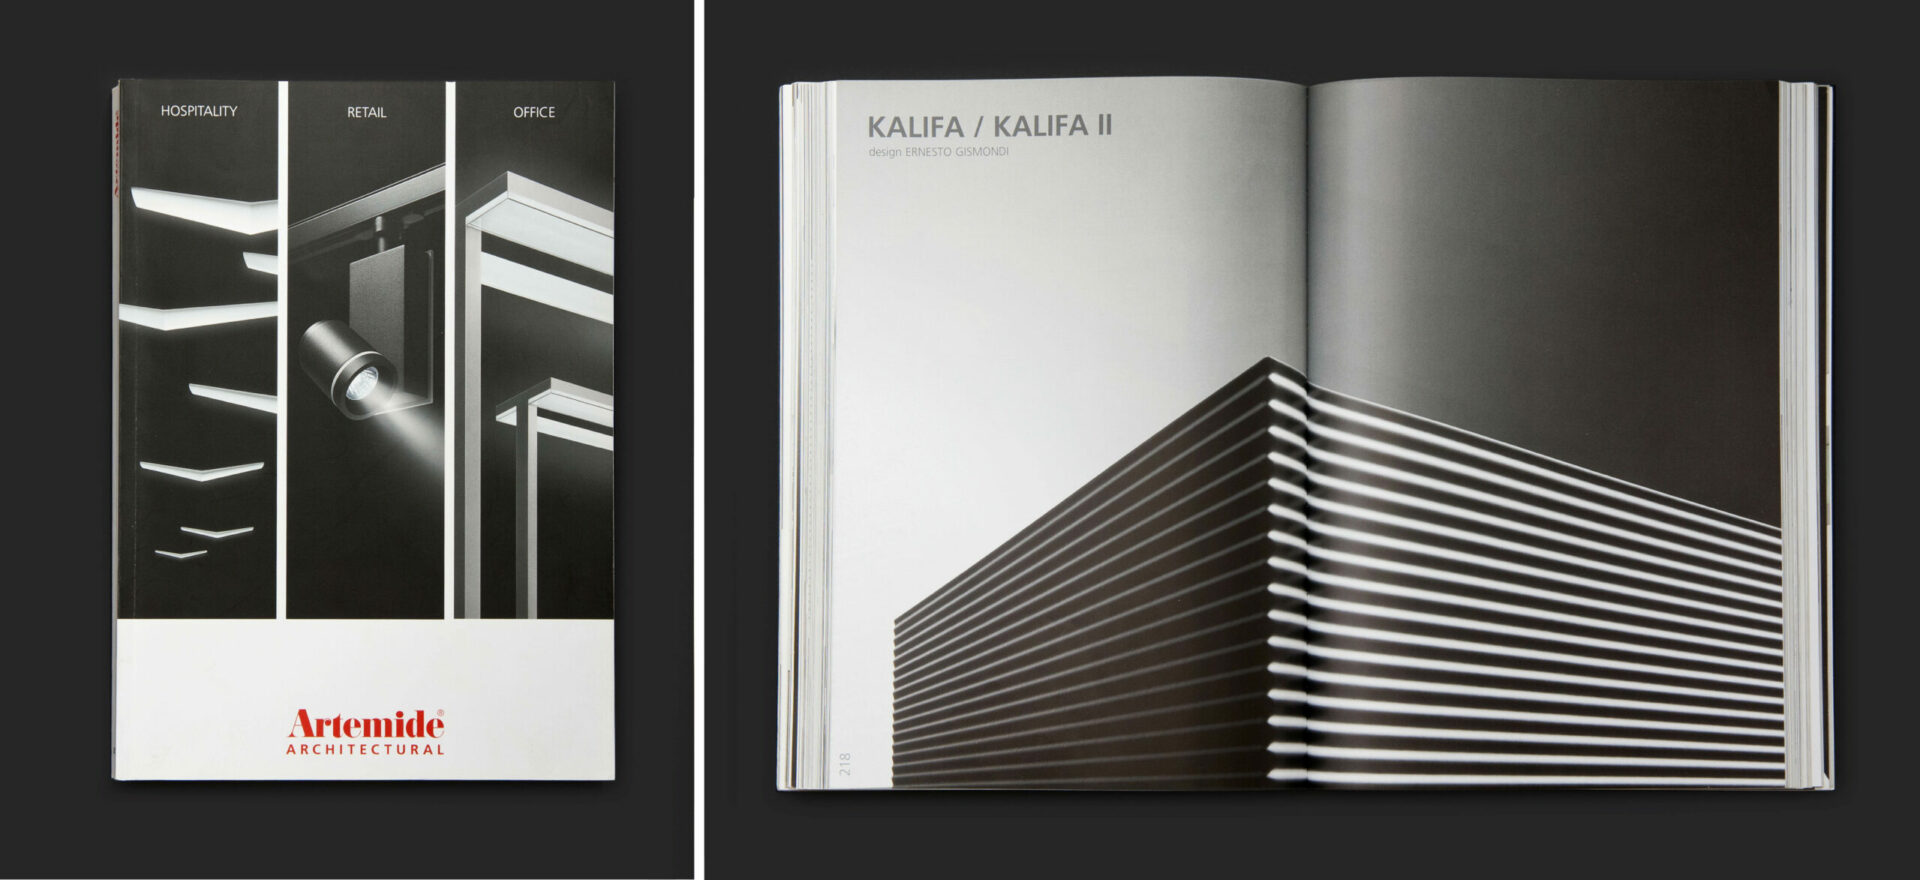 Hospitality, retail and office light catalog for Artemide Architectural in greyscale on a black background. On the right side of the screen the open catalog shows a detail of the model Kalifa and Kalifa II in greyscale with blackbackground.